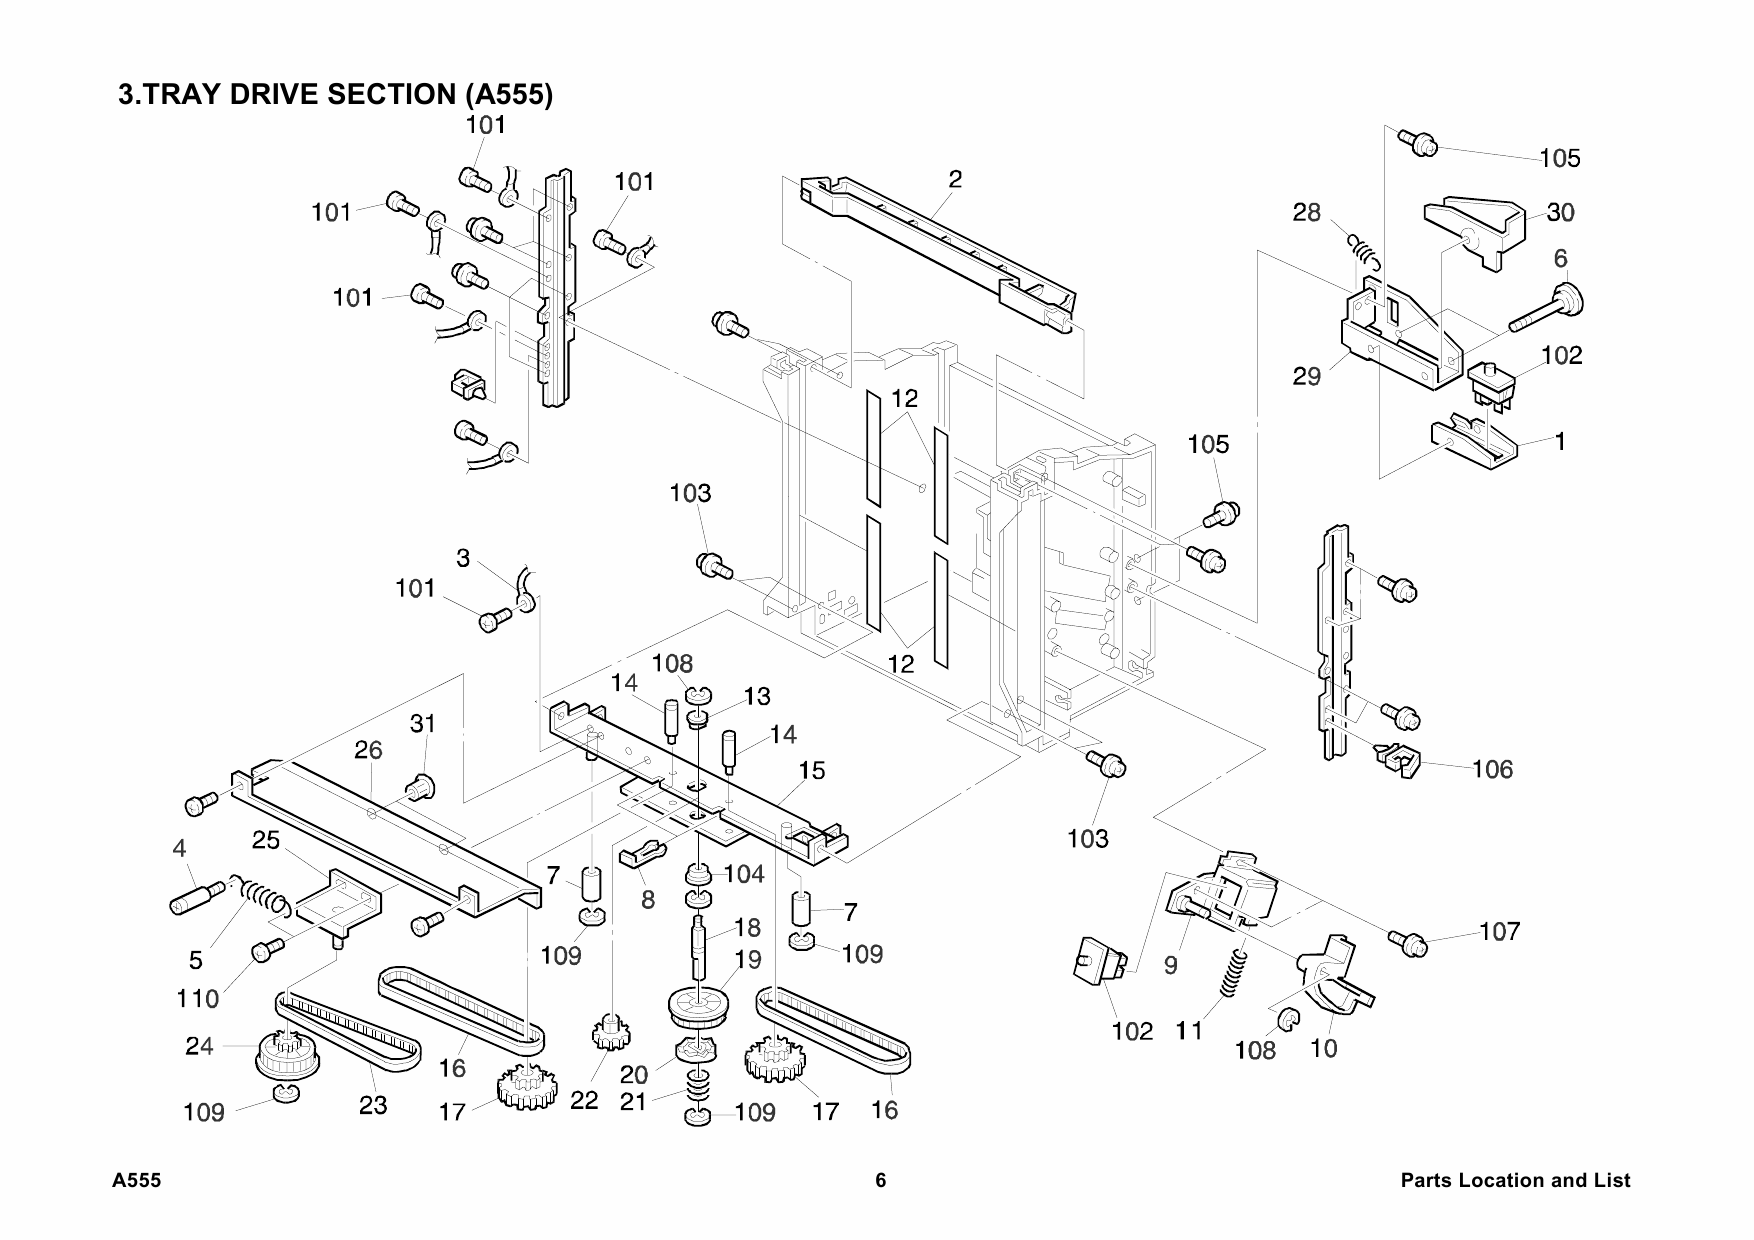 RICOH Options A555 10-BIN-SORTER-STAPLER Parts Catalog PDF